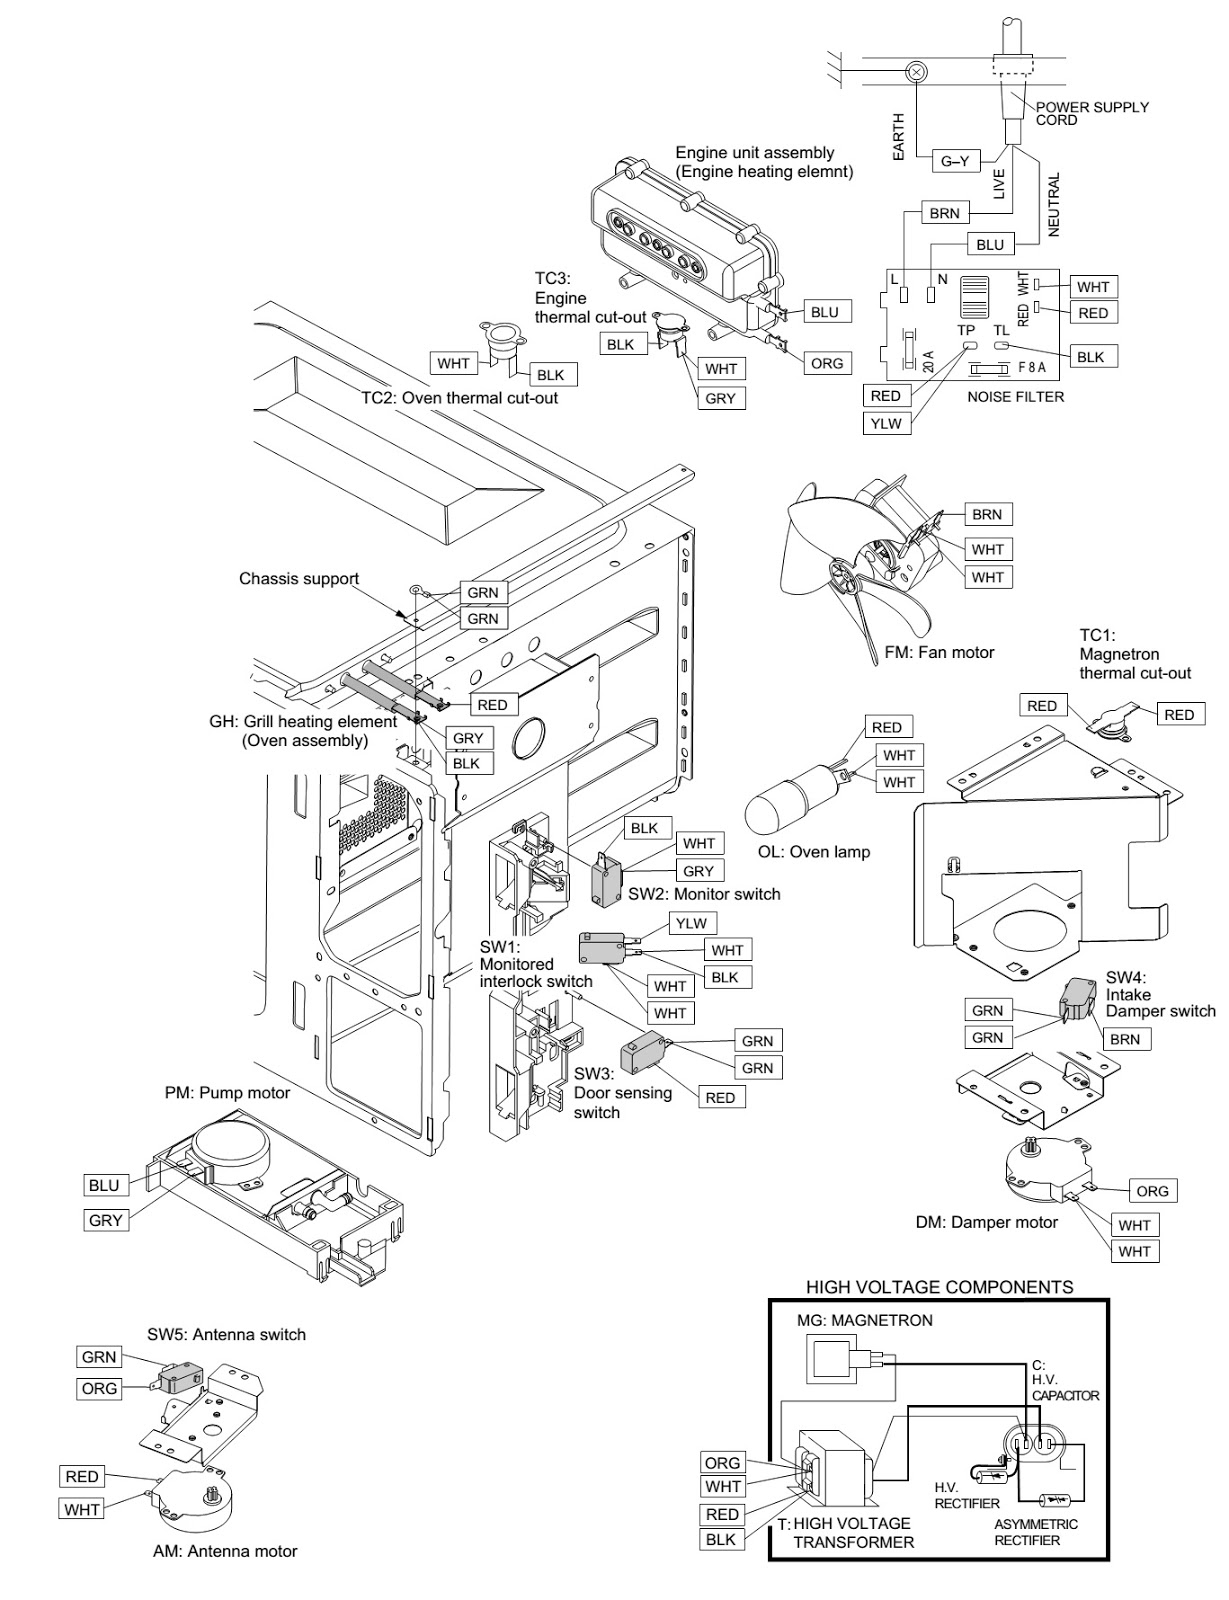 Circuit diagram and other ponents